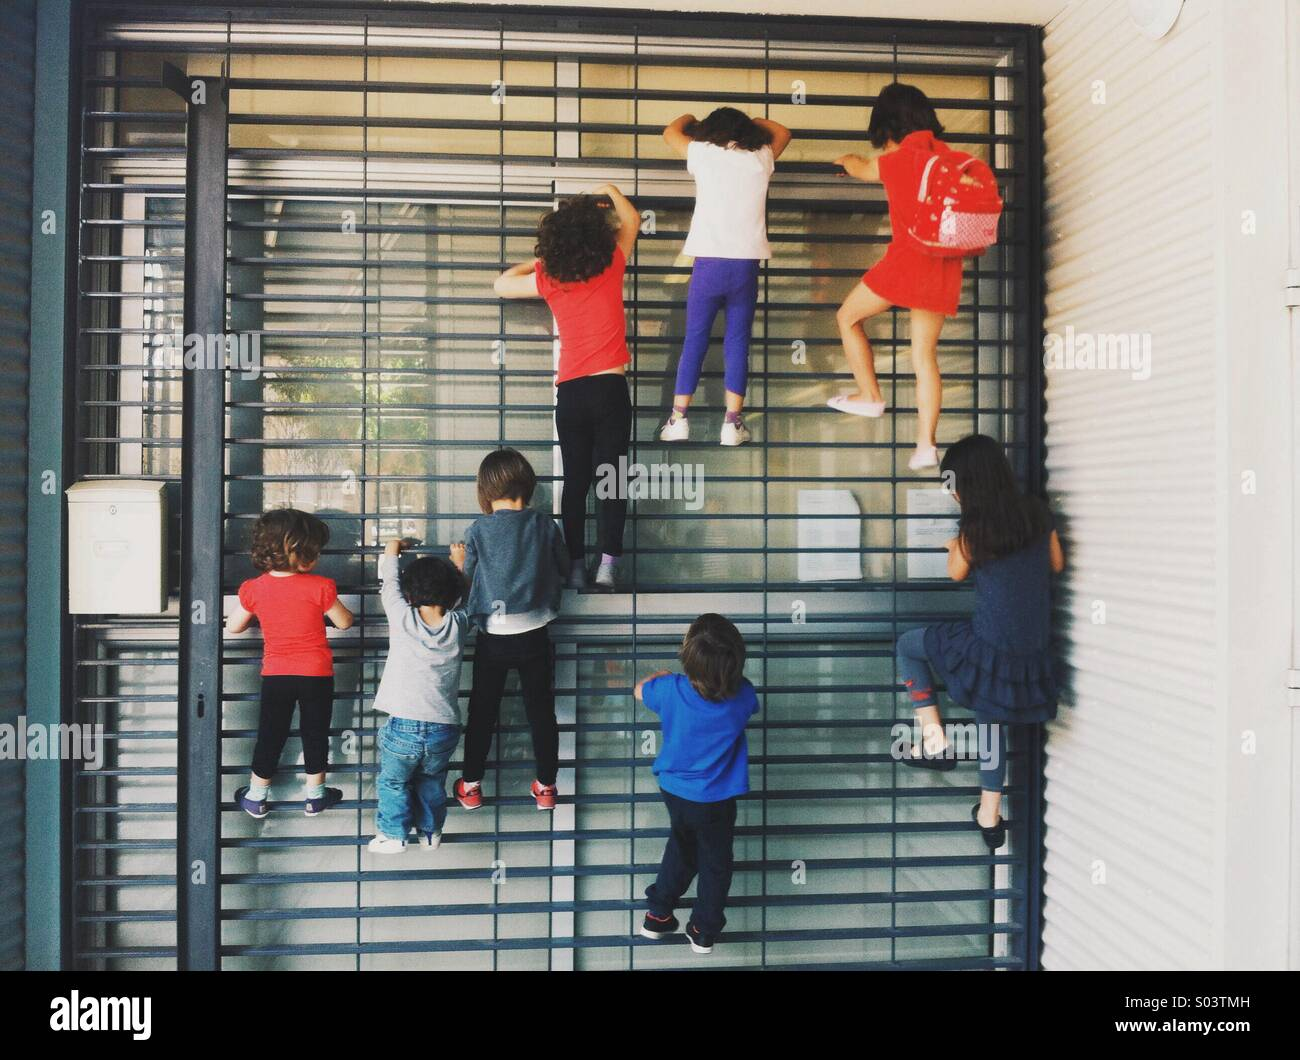 Seven child climbing a wall - Stock Image